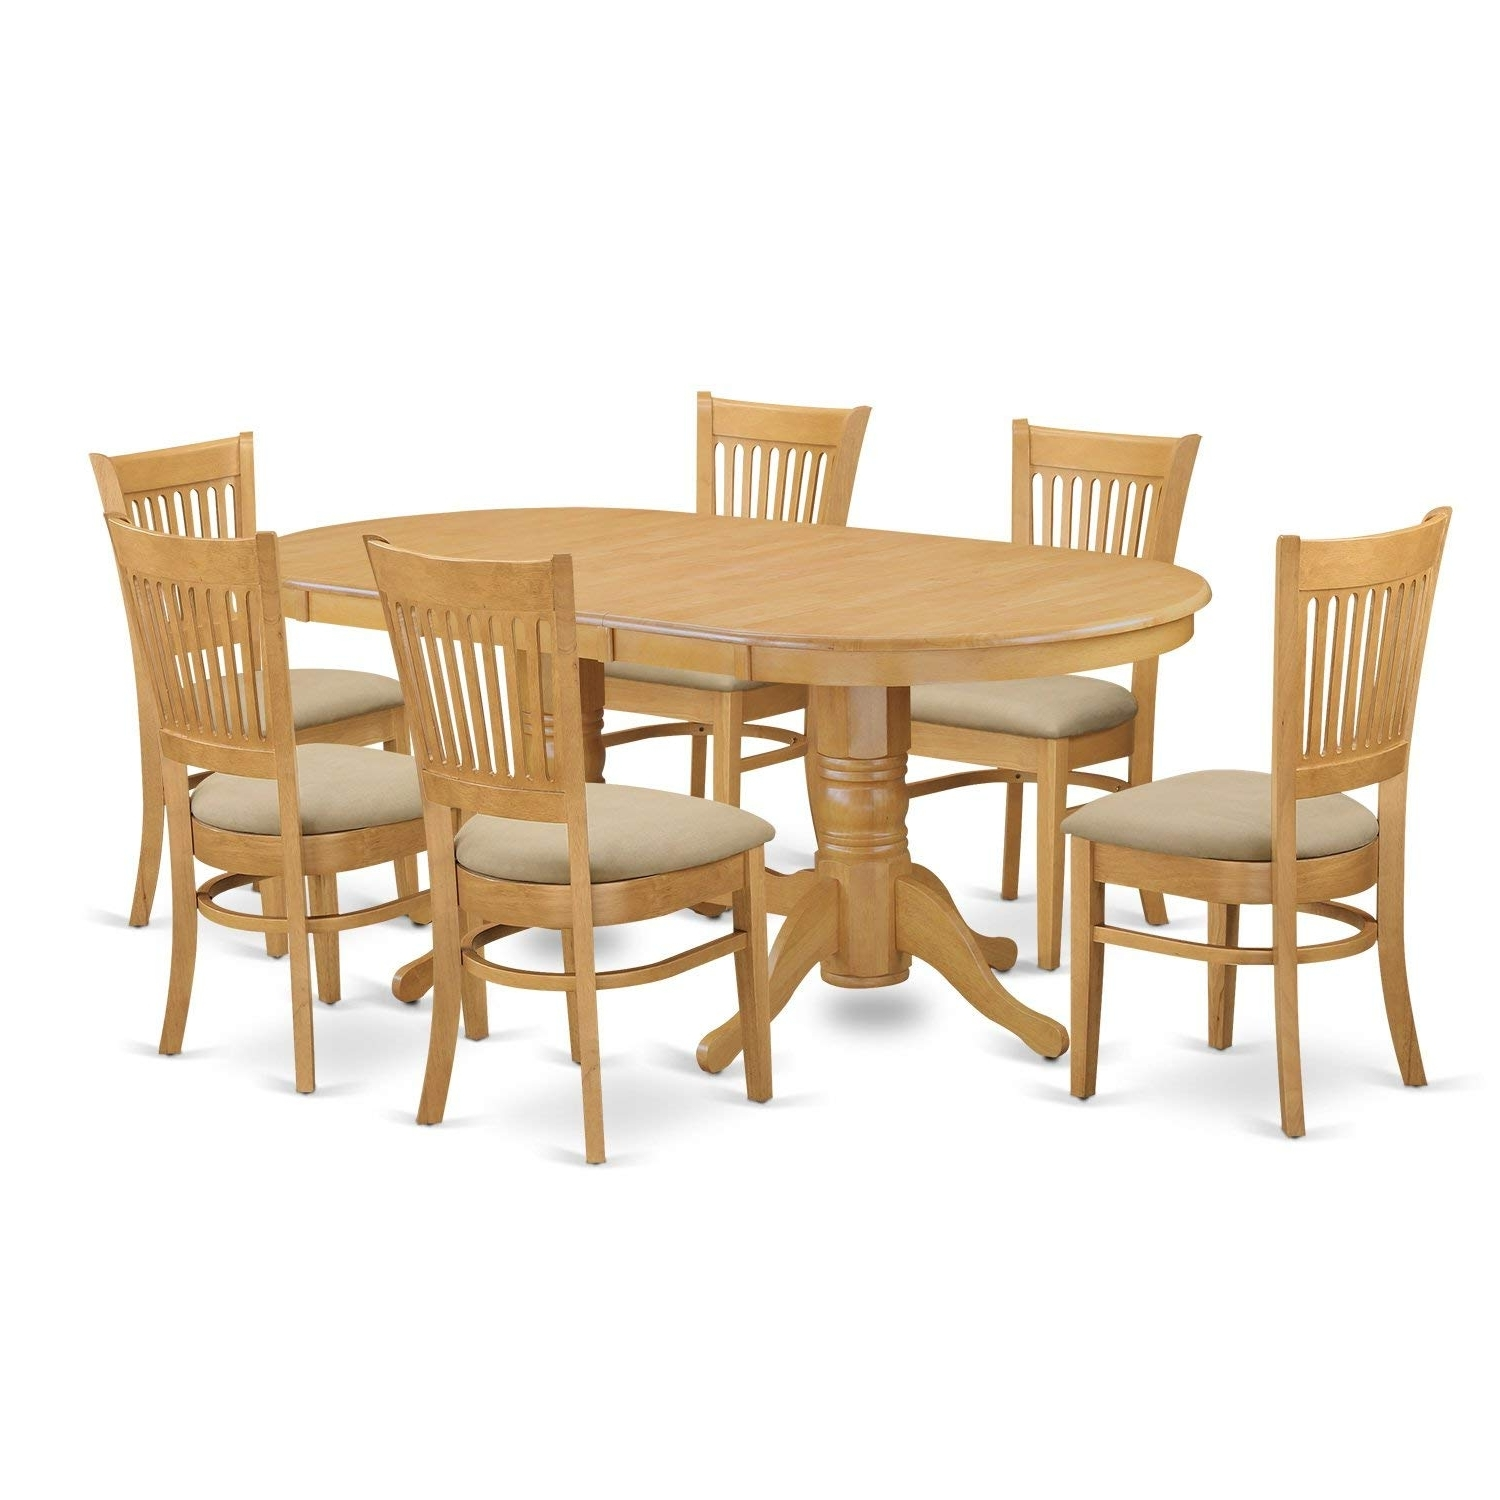 Amazon: East West Furniture Vanc7 Oak C 7 Piece Dining Table Set With Current Craftsman 7 Piece Rectangle Extension Dining Sets With Side Chairs (View 3 of 25)